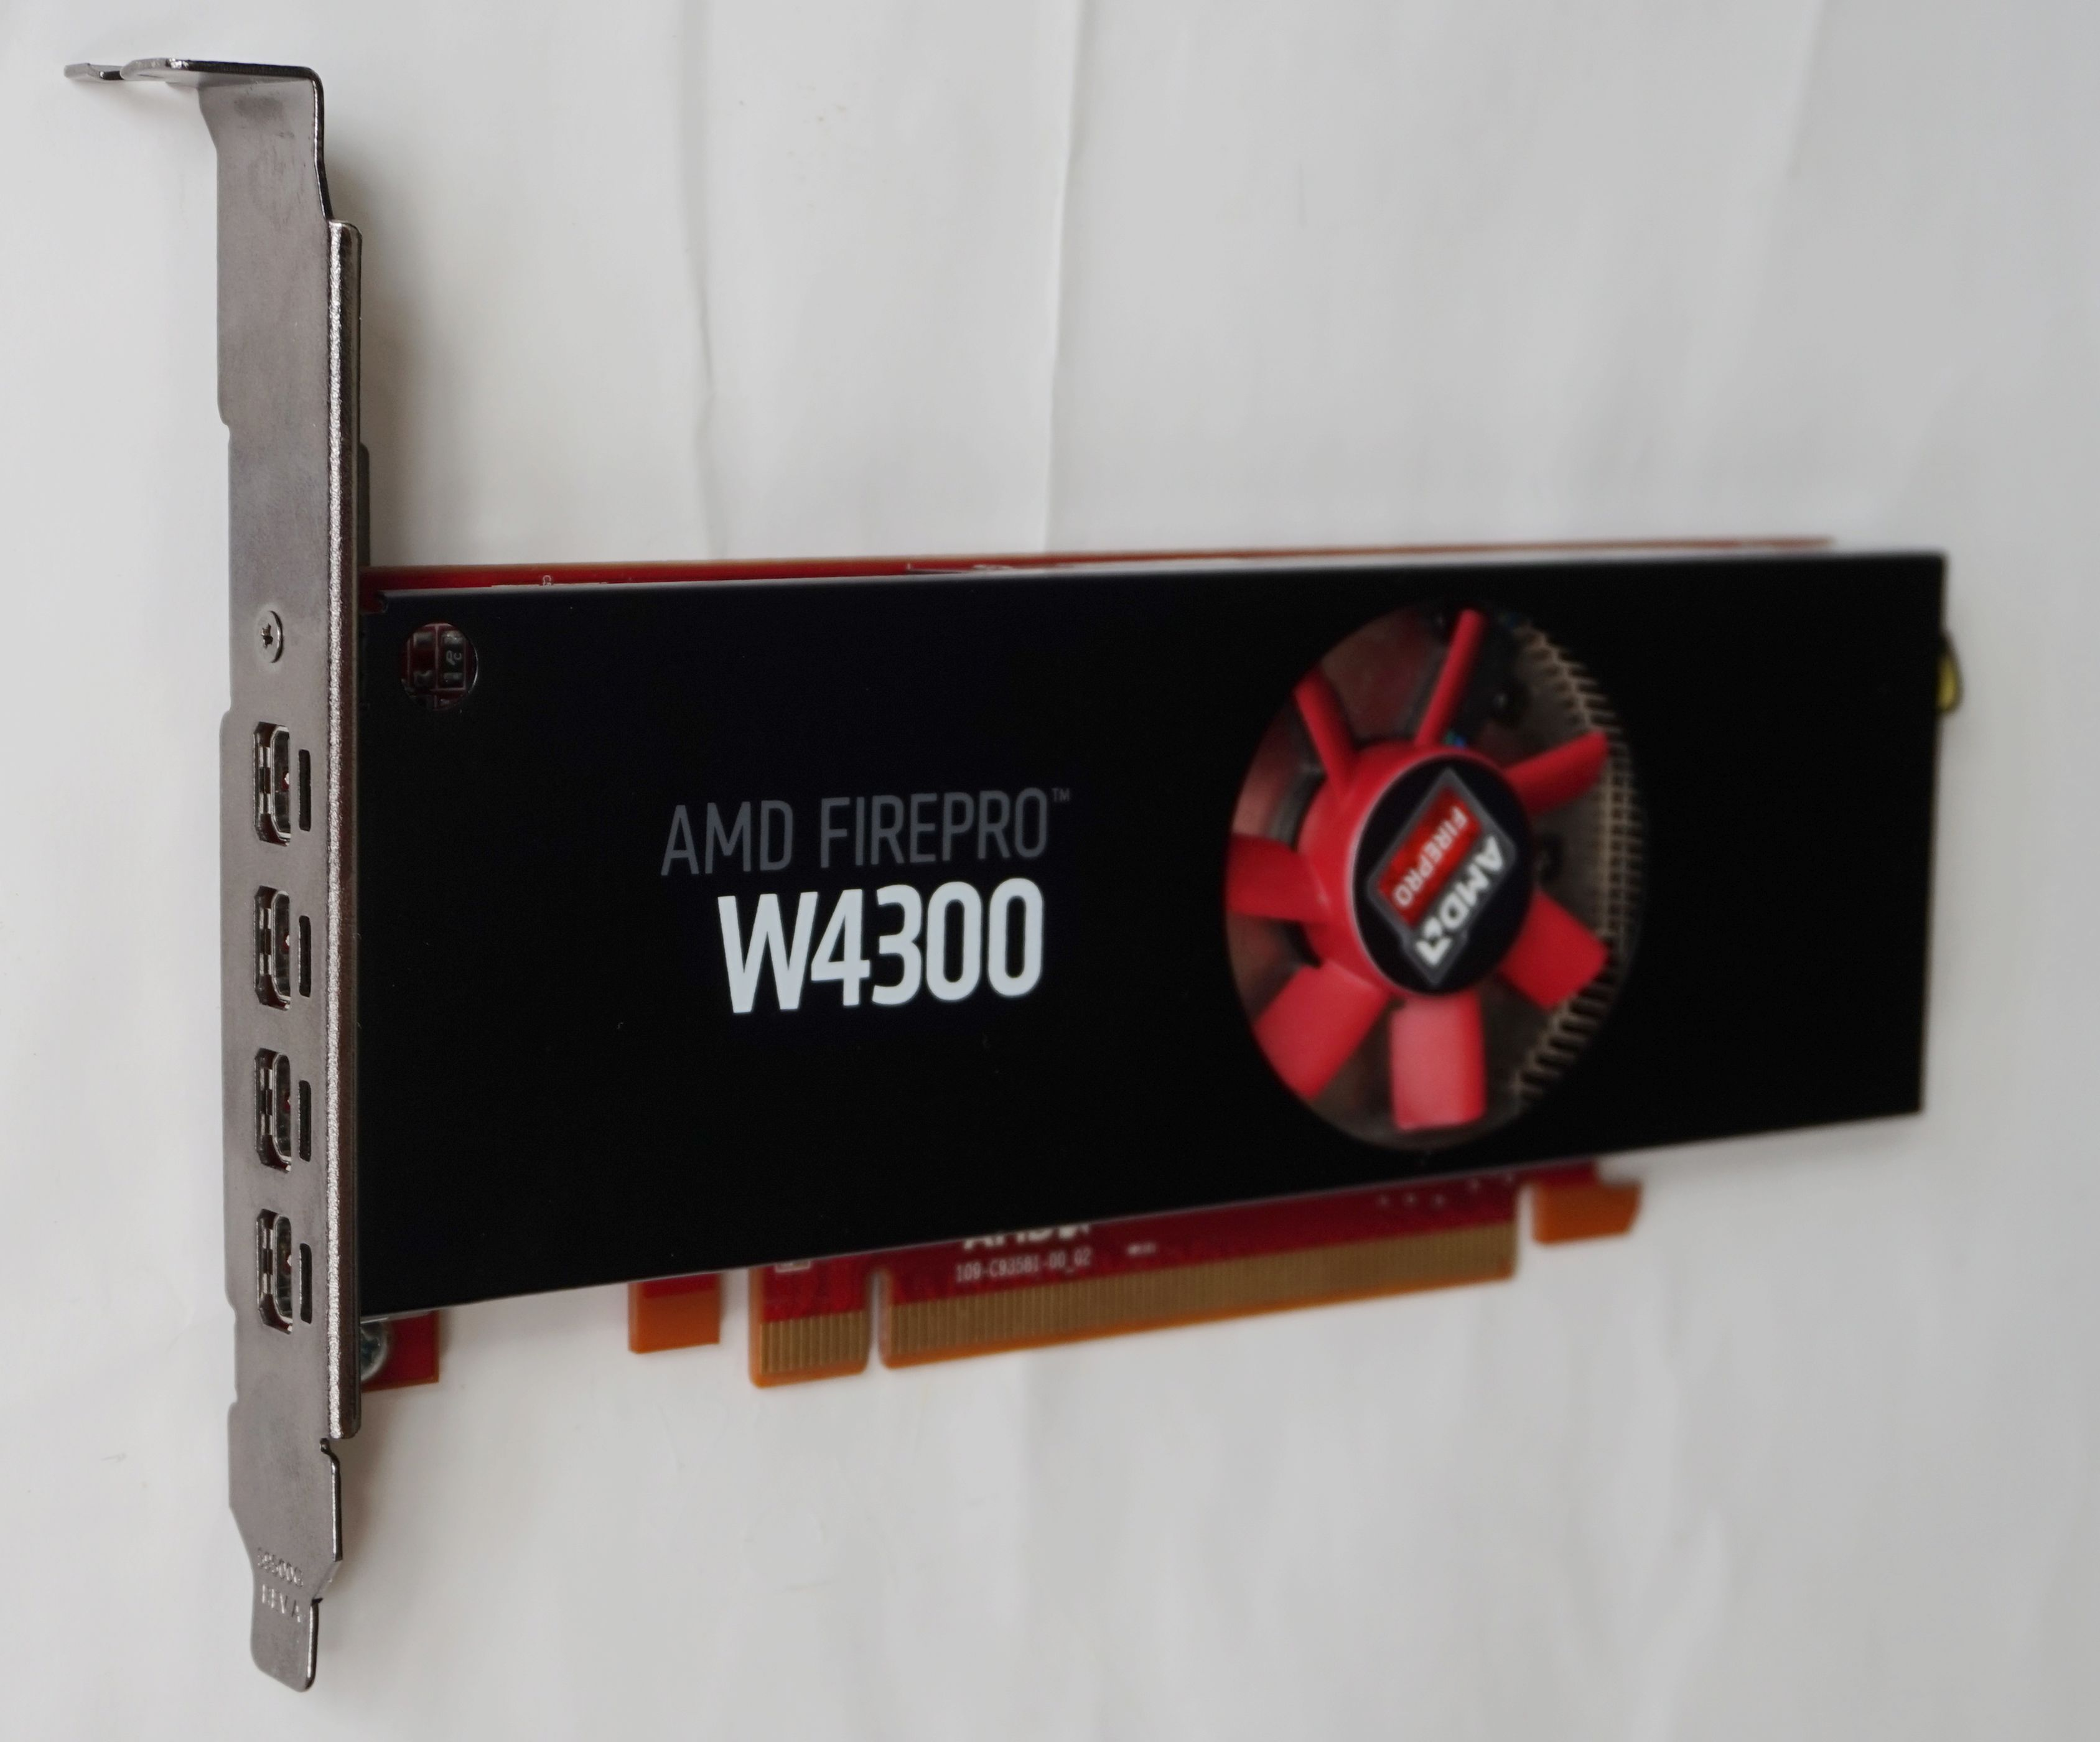 AMD Firepro w4300 4GB Professional Design Graphics Card 3D Rendering 4 Screen Graphics Graphics Card(China)